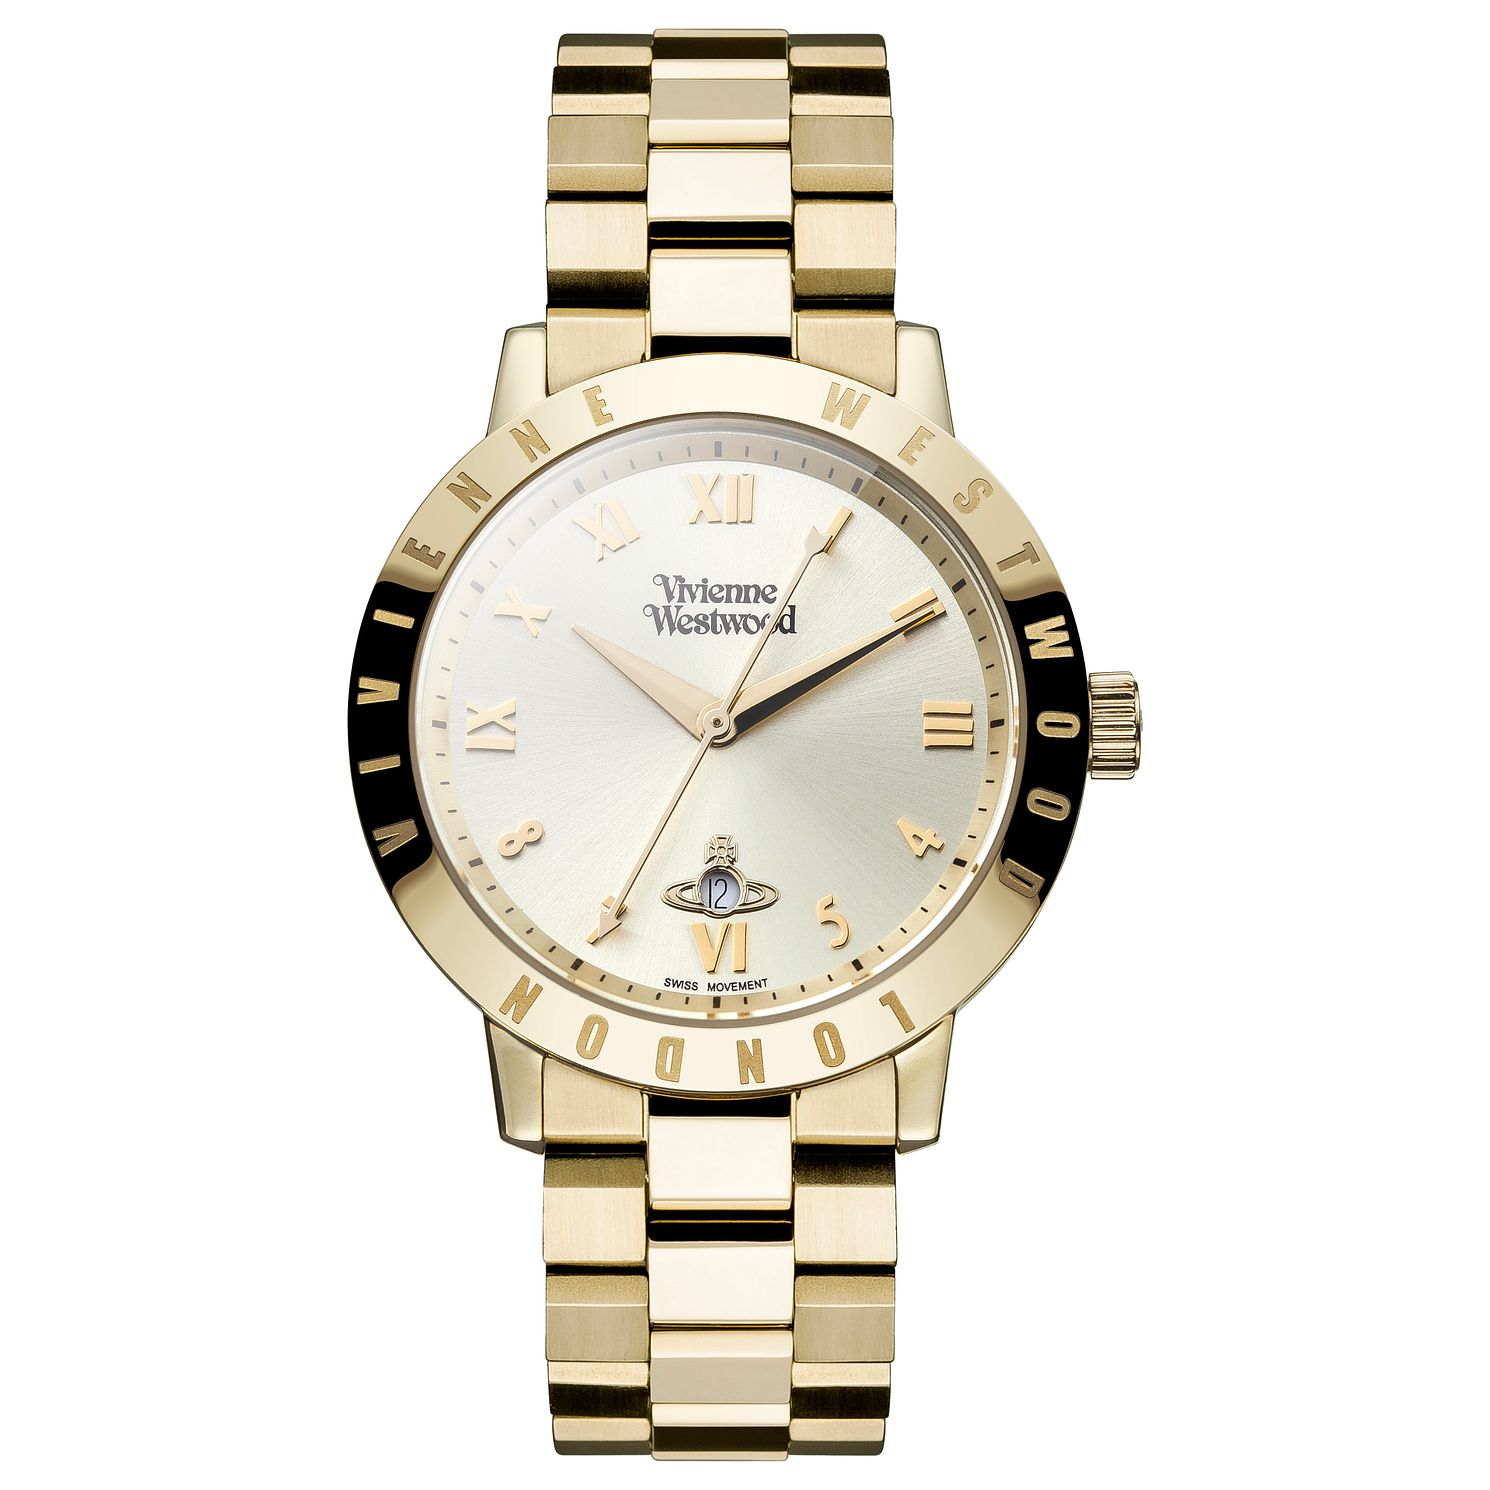 Vivienne Westwood Ladies' Gold Plated Bracelet Watch - Product number 4590678